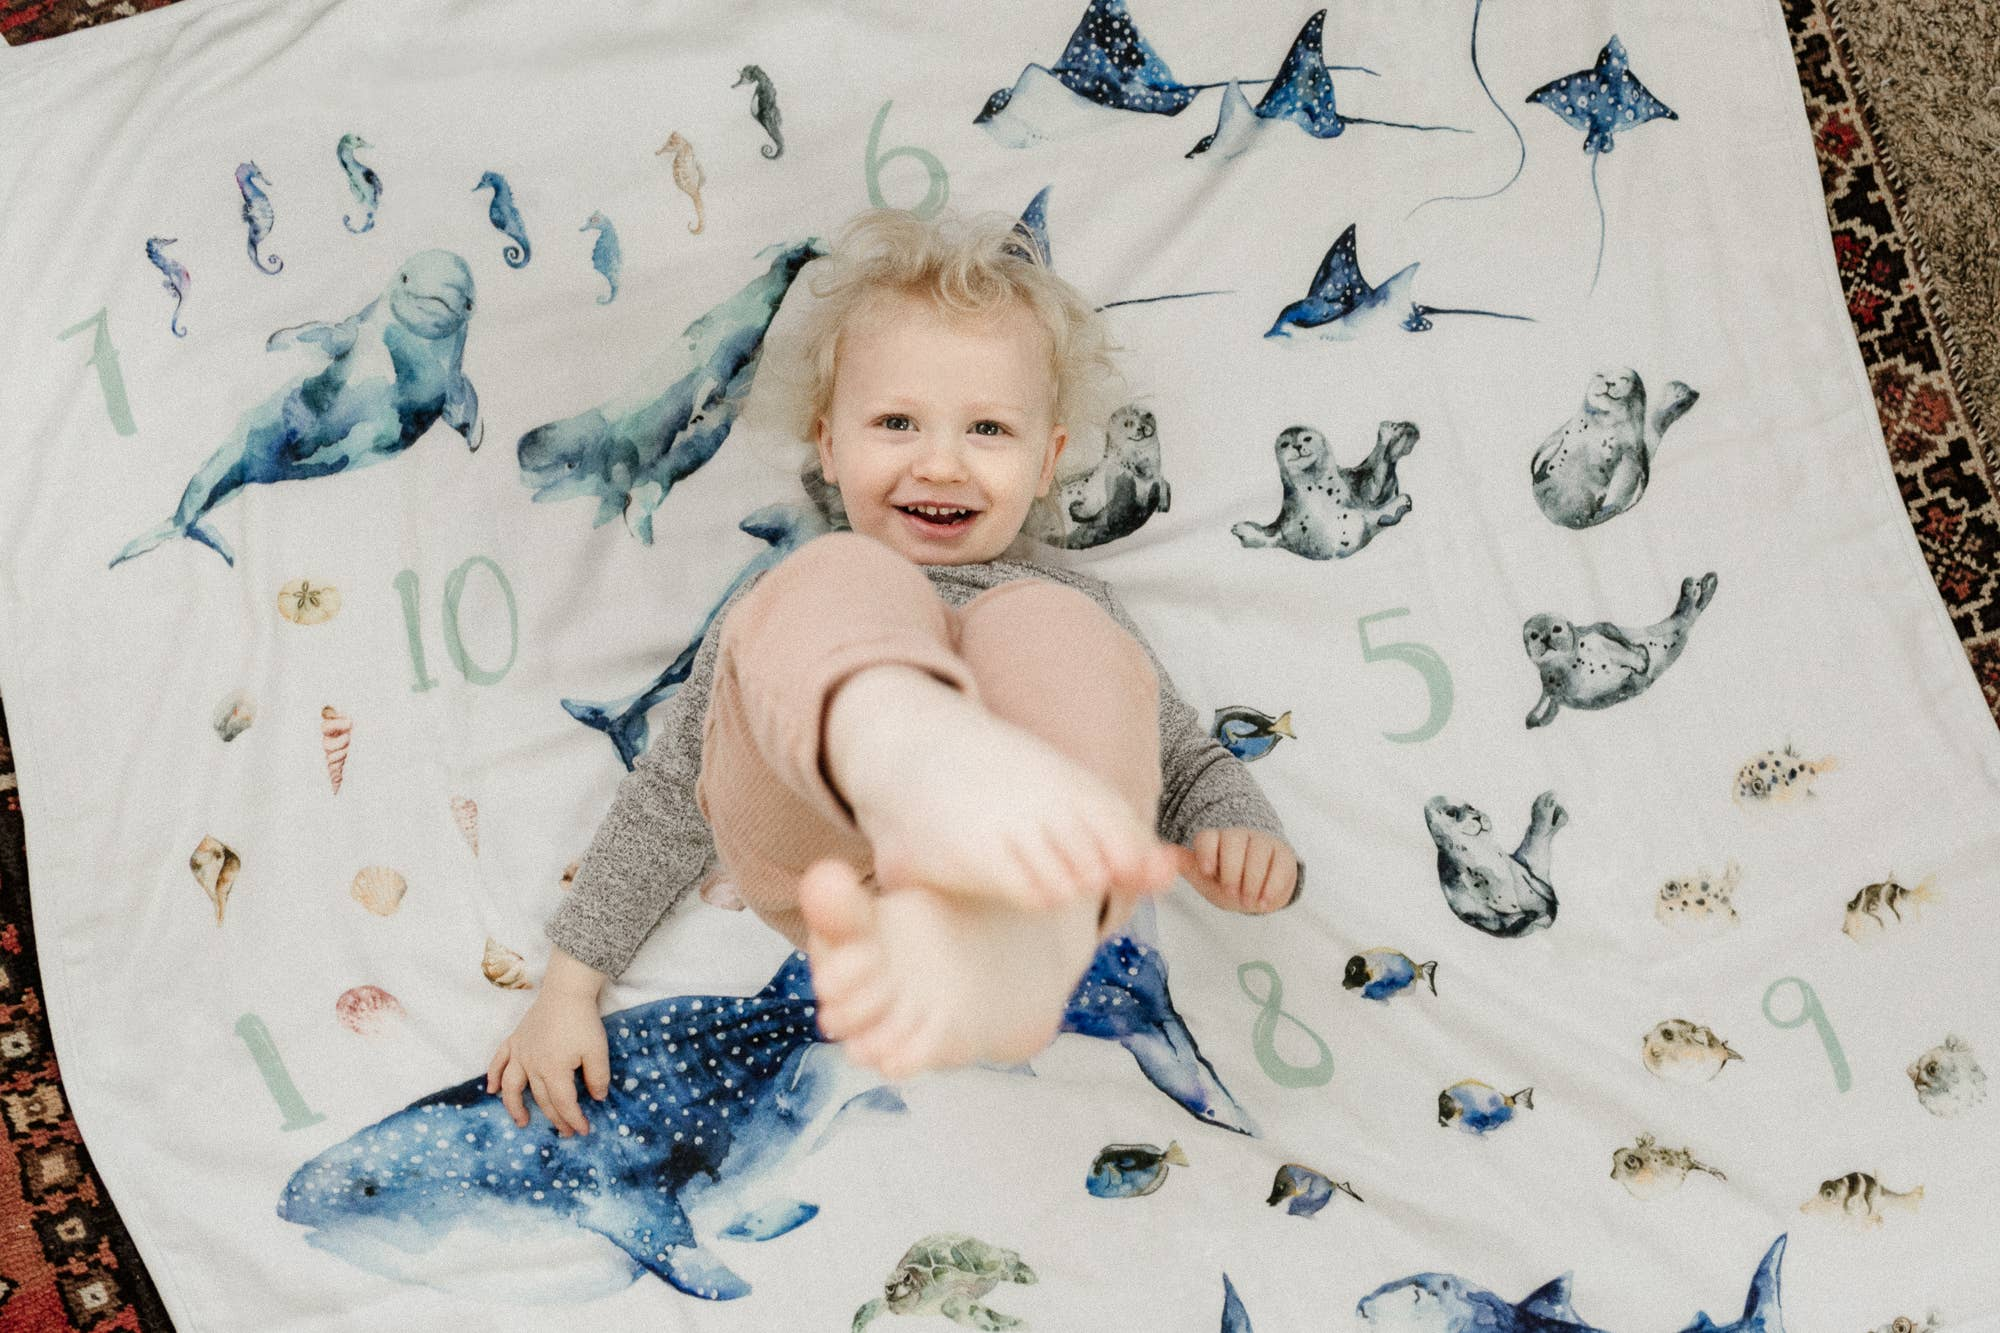 Ocean Animals and Numbers 1-10 Blanket | Trada Marketplace